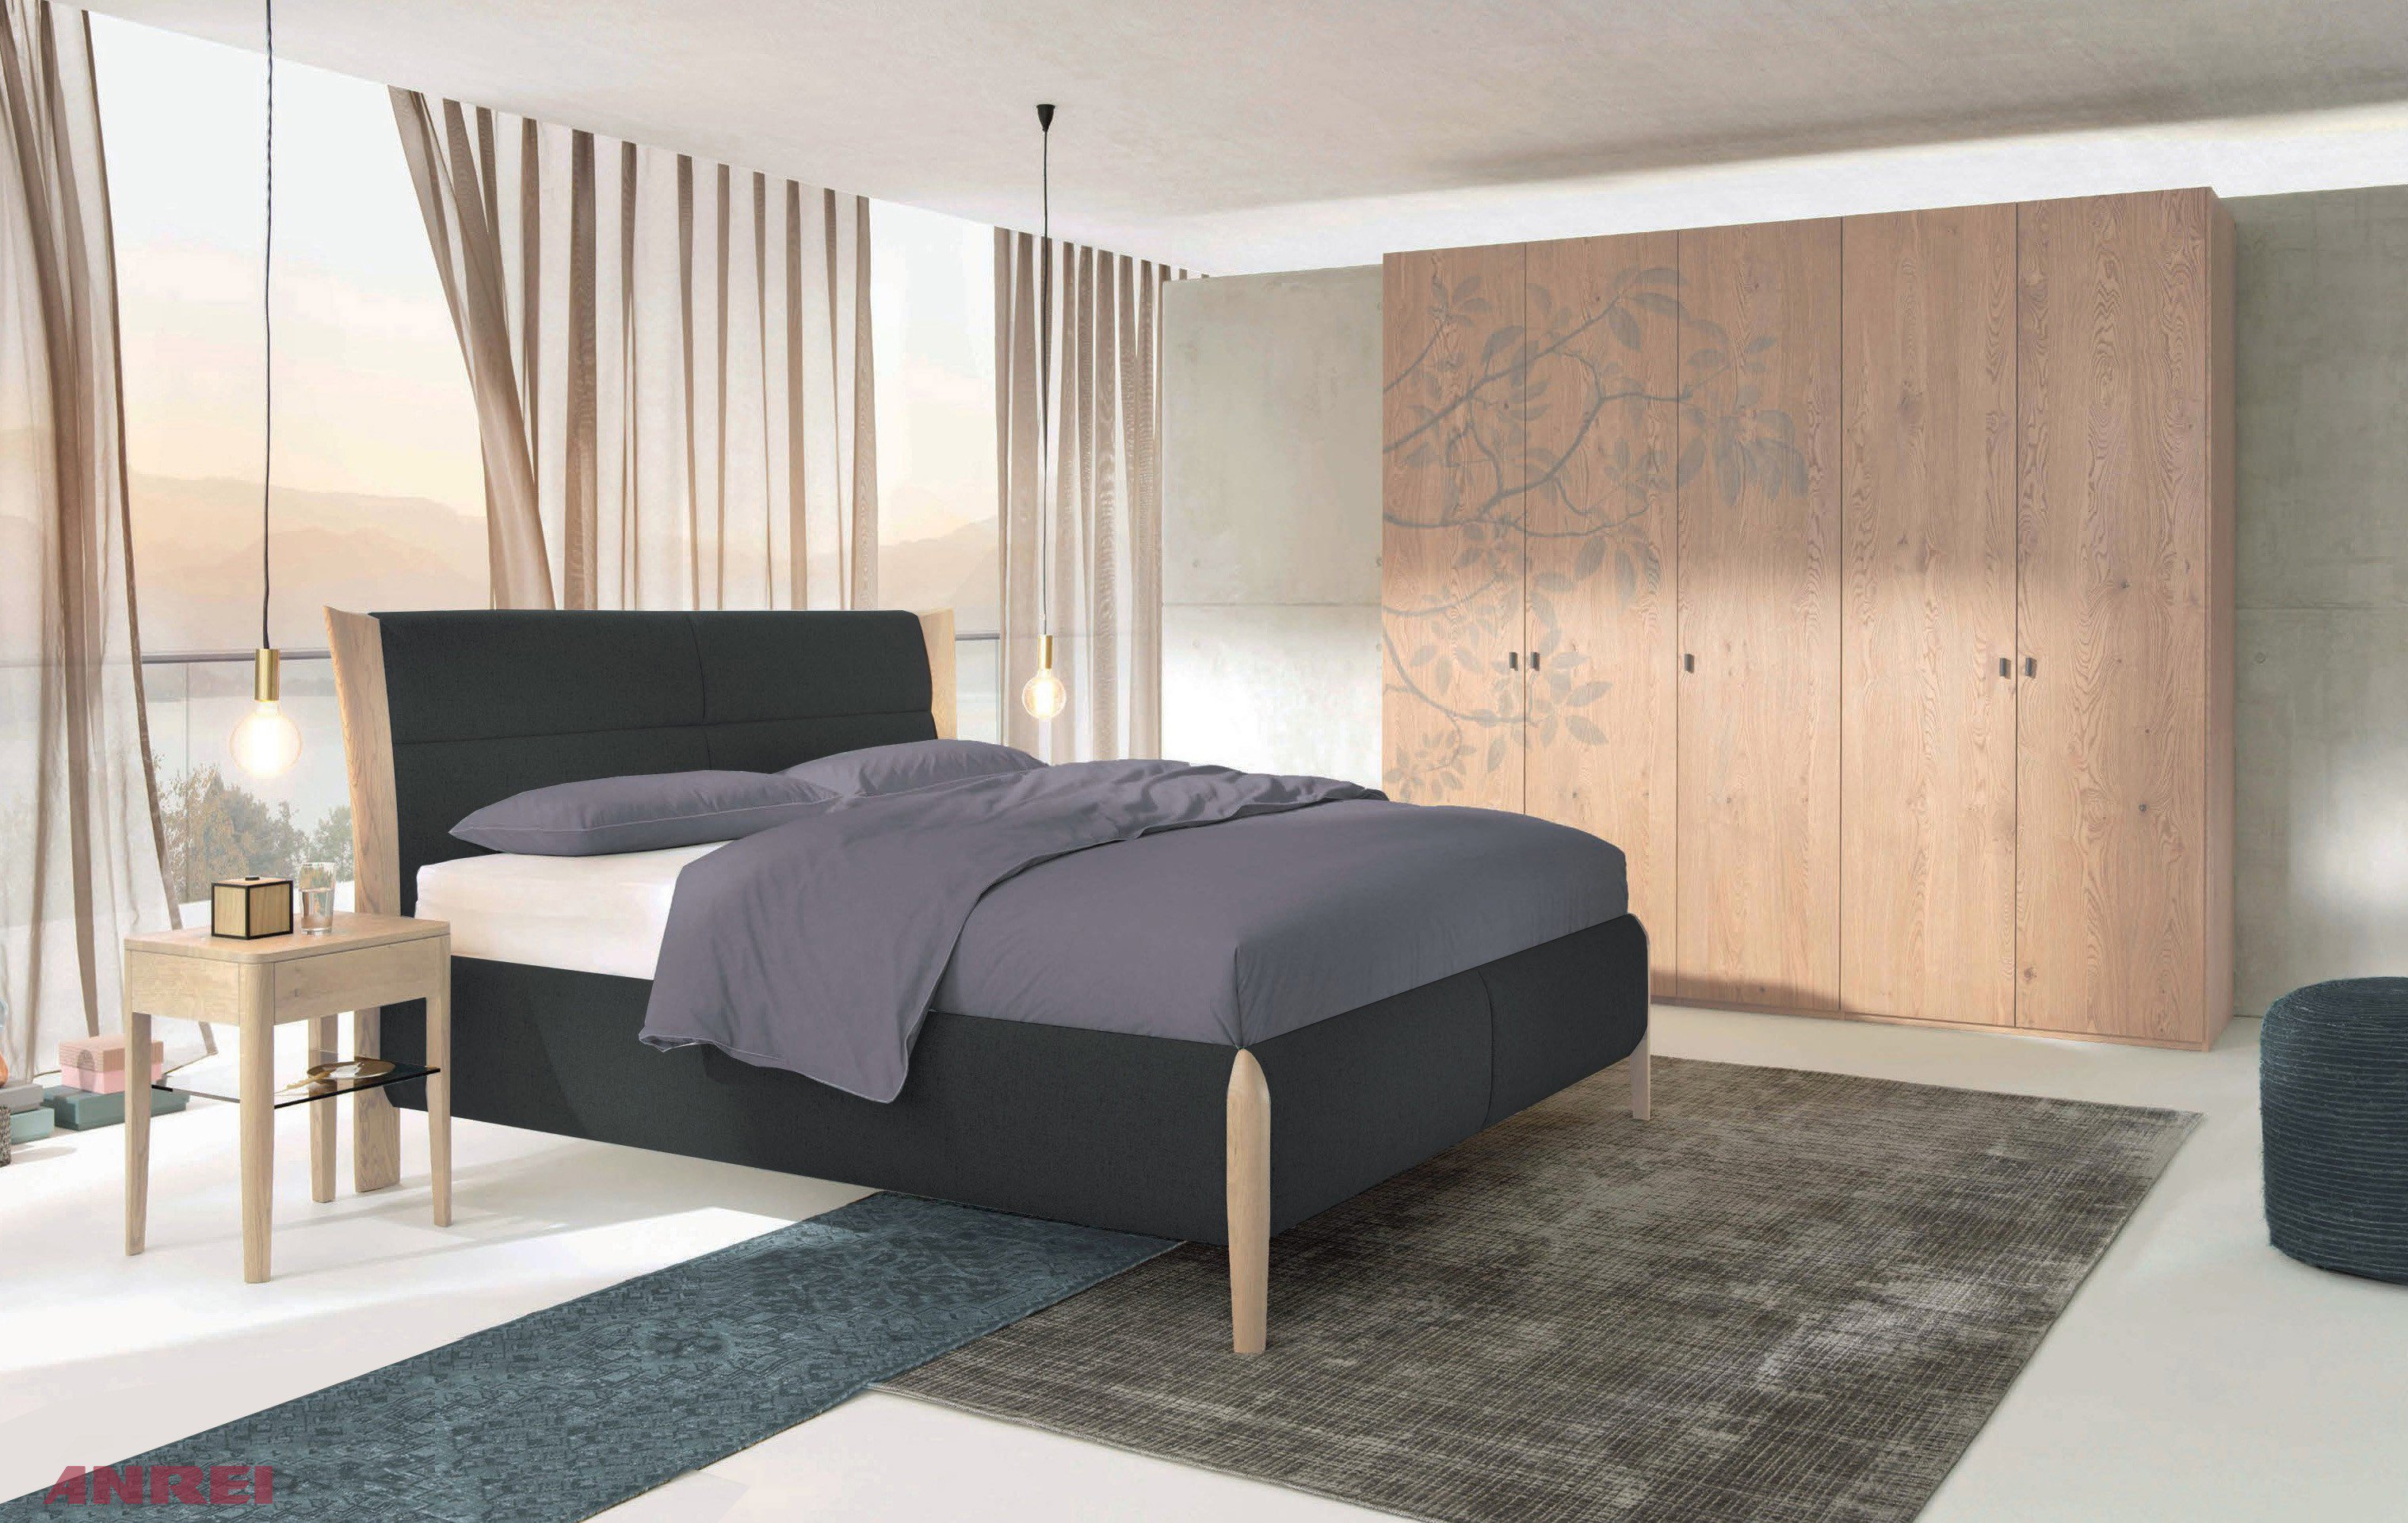 schlafzimmer set mevisto anrei asteiche wei m bel letz ihr online shop. Black Bedroom Furniture Sets. Home Design Ideas